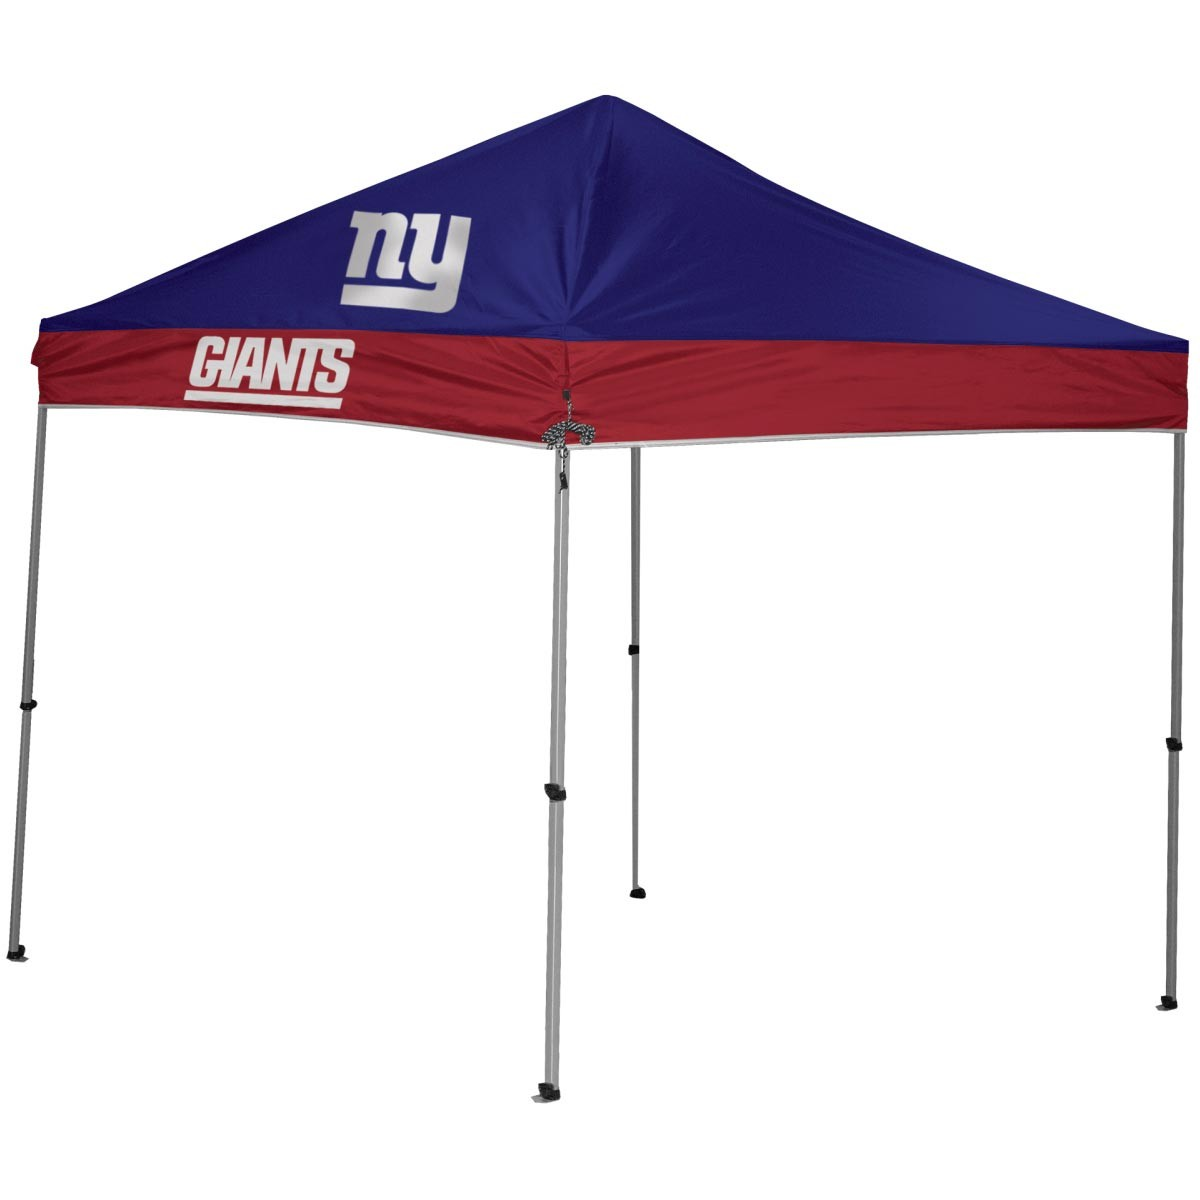 San Diego Chargers Canopy: New York Giants NFL 9x9 Straight Leg Canopy